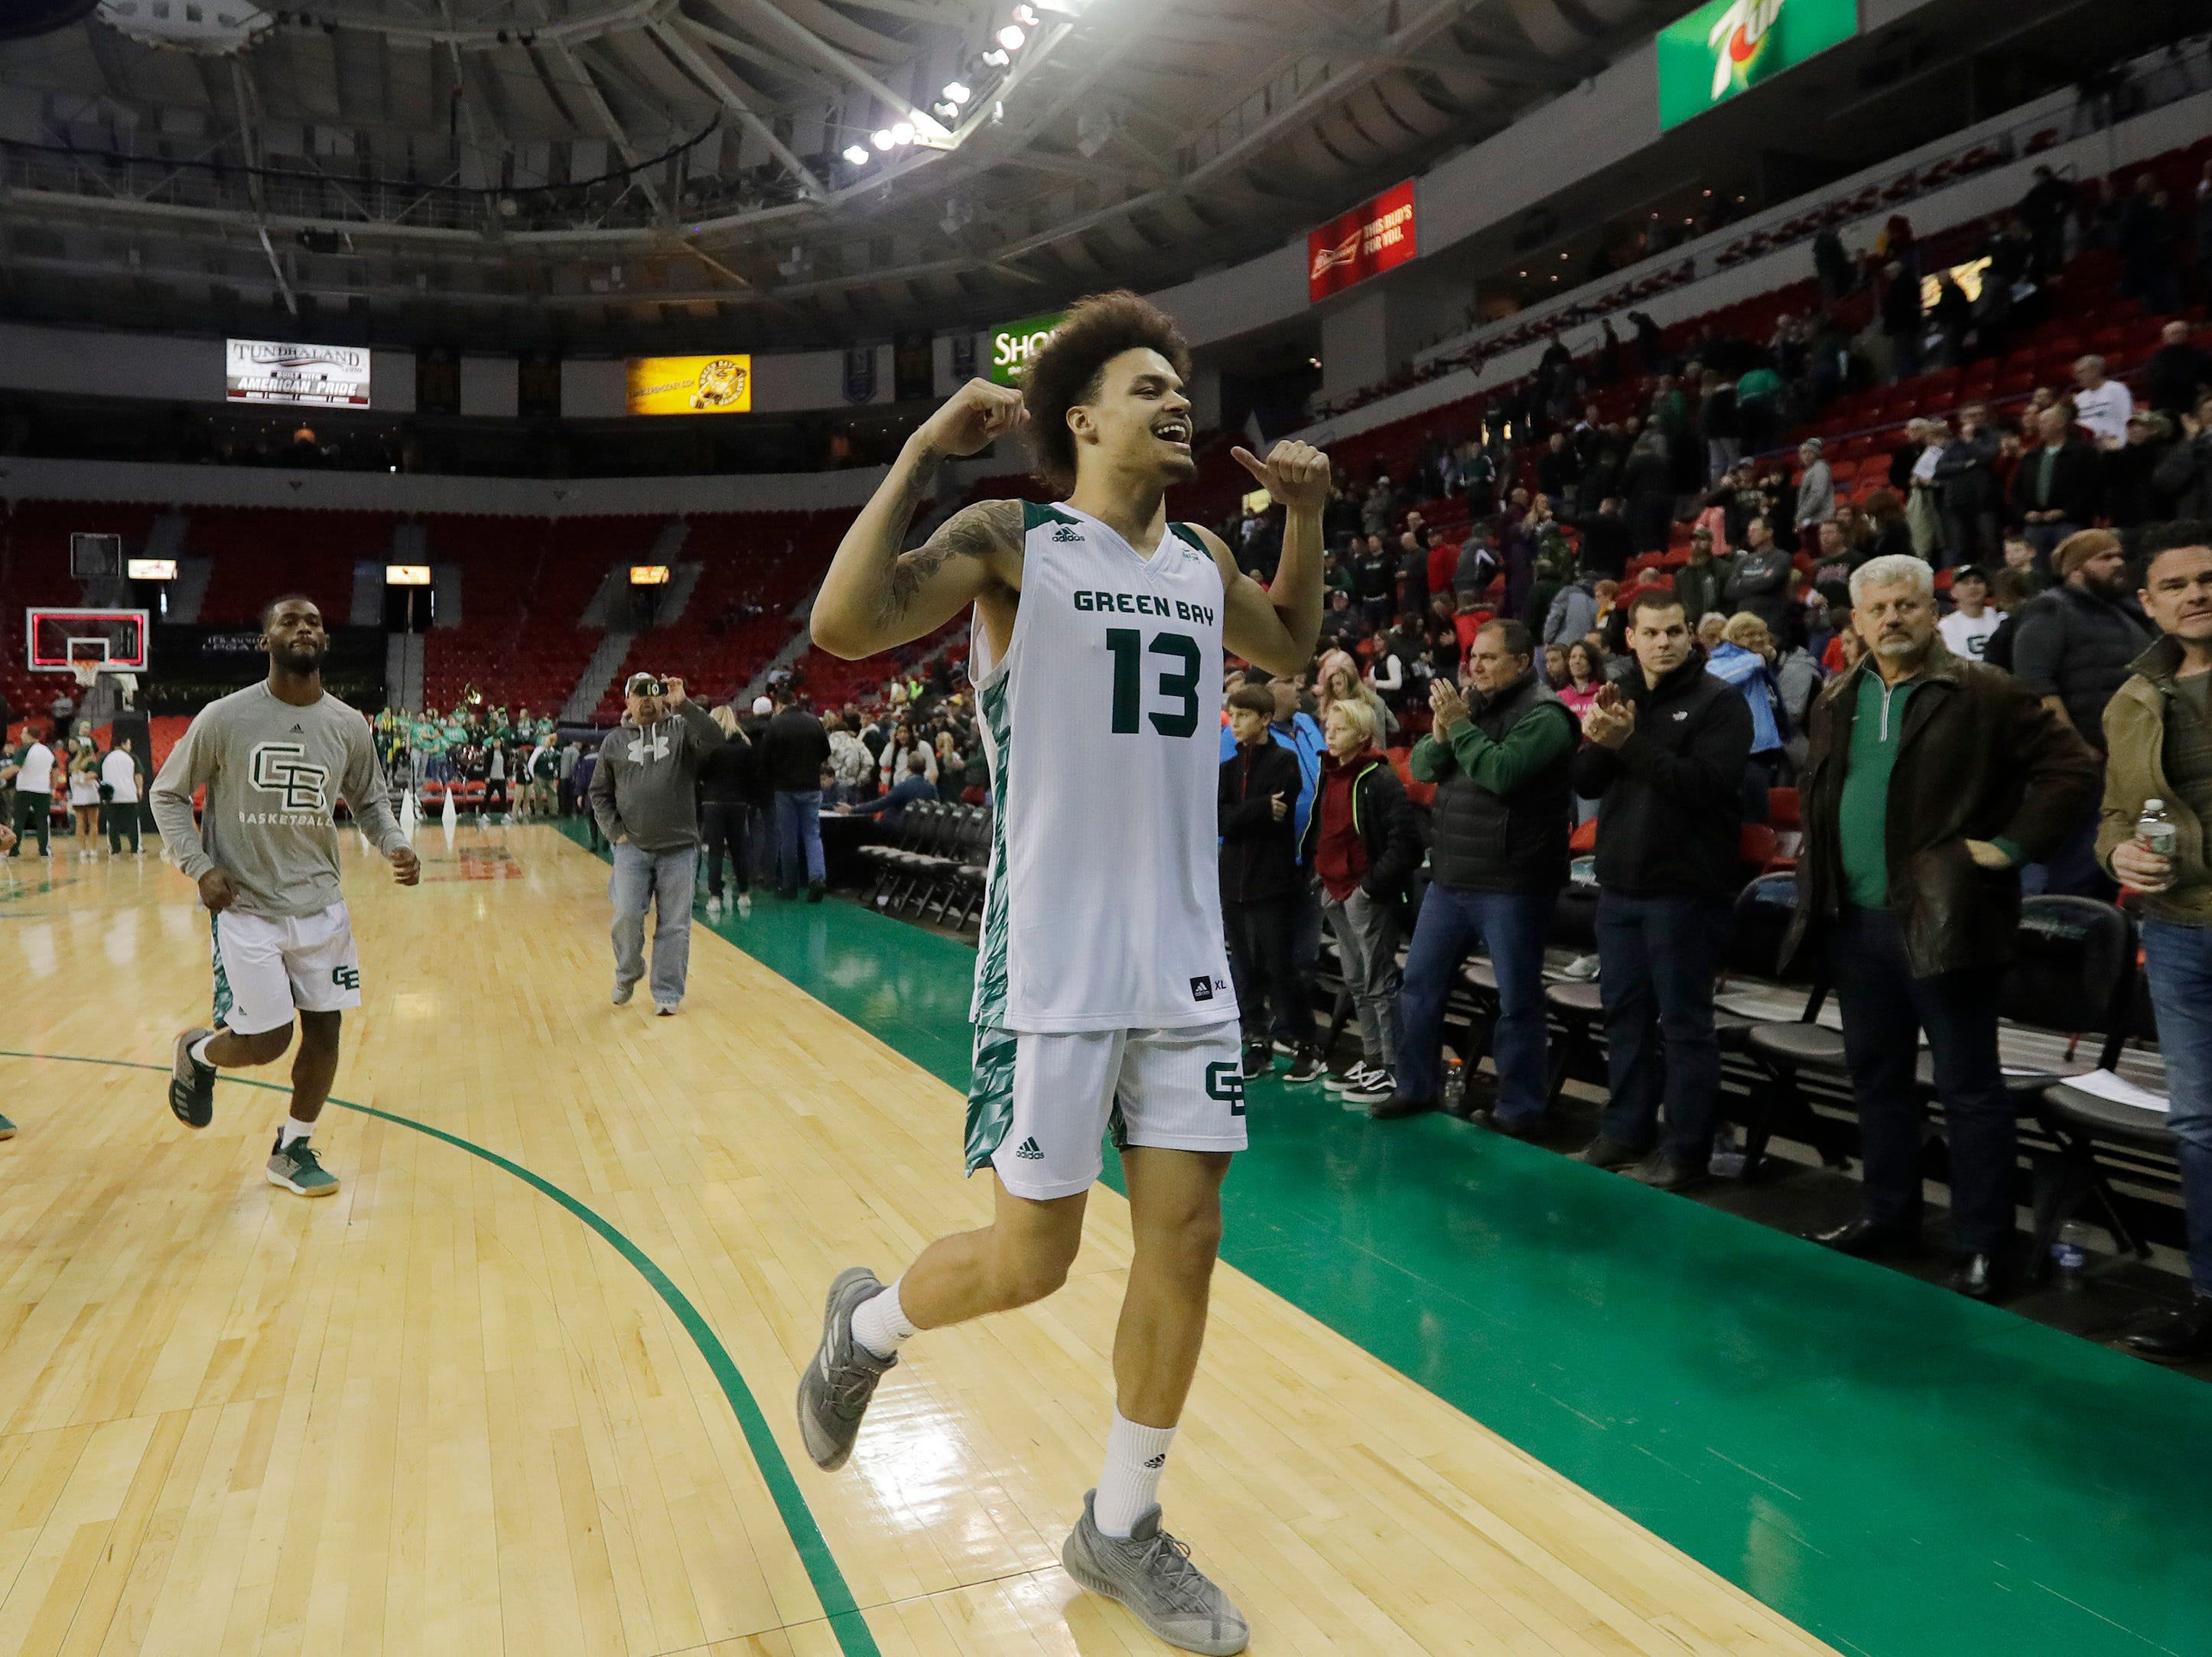 Green Bay Phoenix guard Trevian Bell (13) celebrates as he leaves the court of the the Phoenix defeated the Belmont Bruins in a NCAA basketball game at the Resch Center on Saturday, December 1, 2018 in Ashwaubenon, Wis.